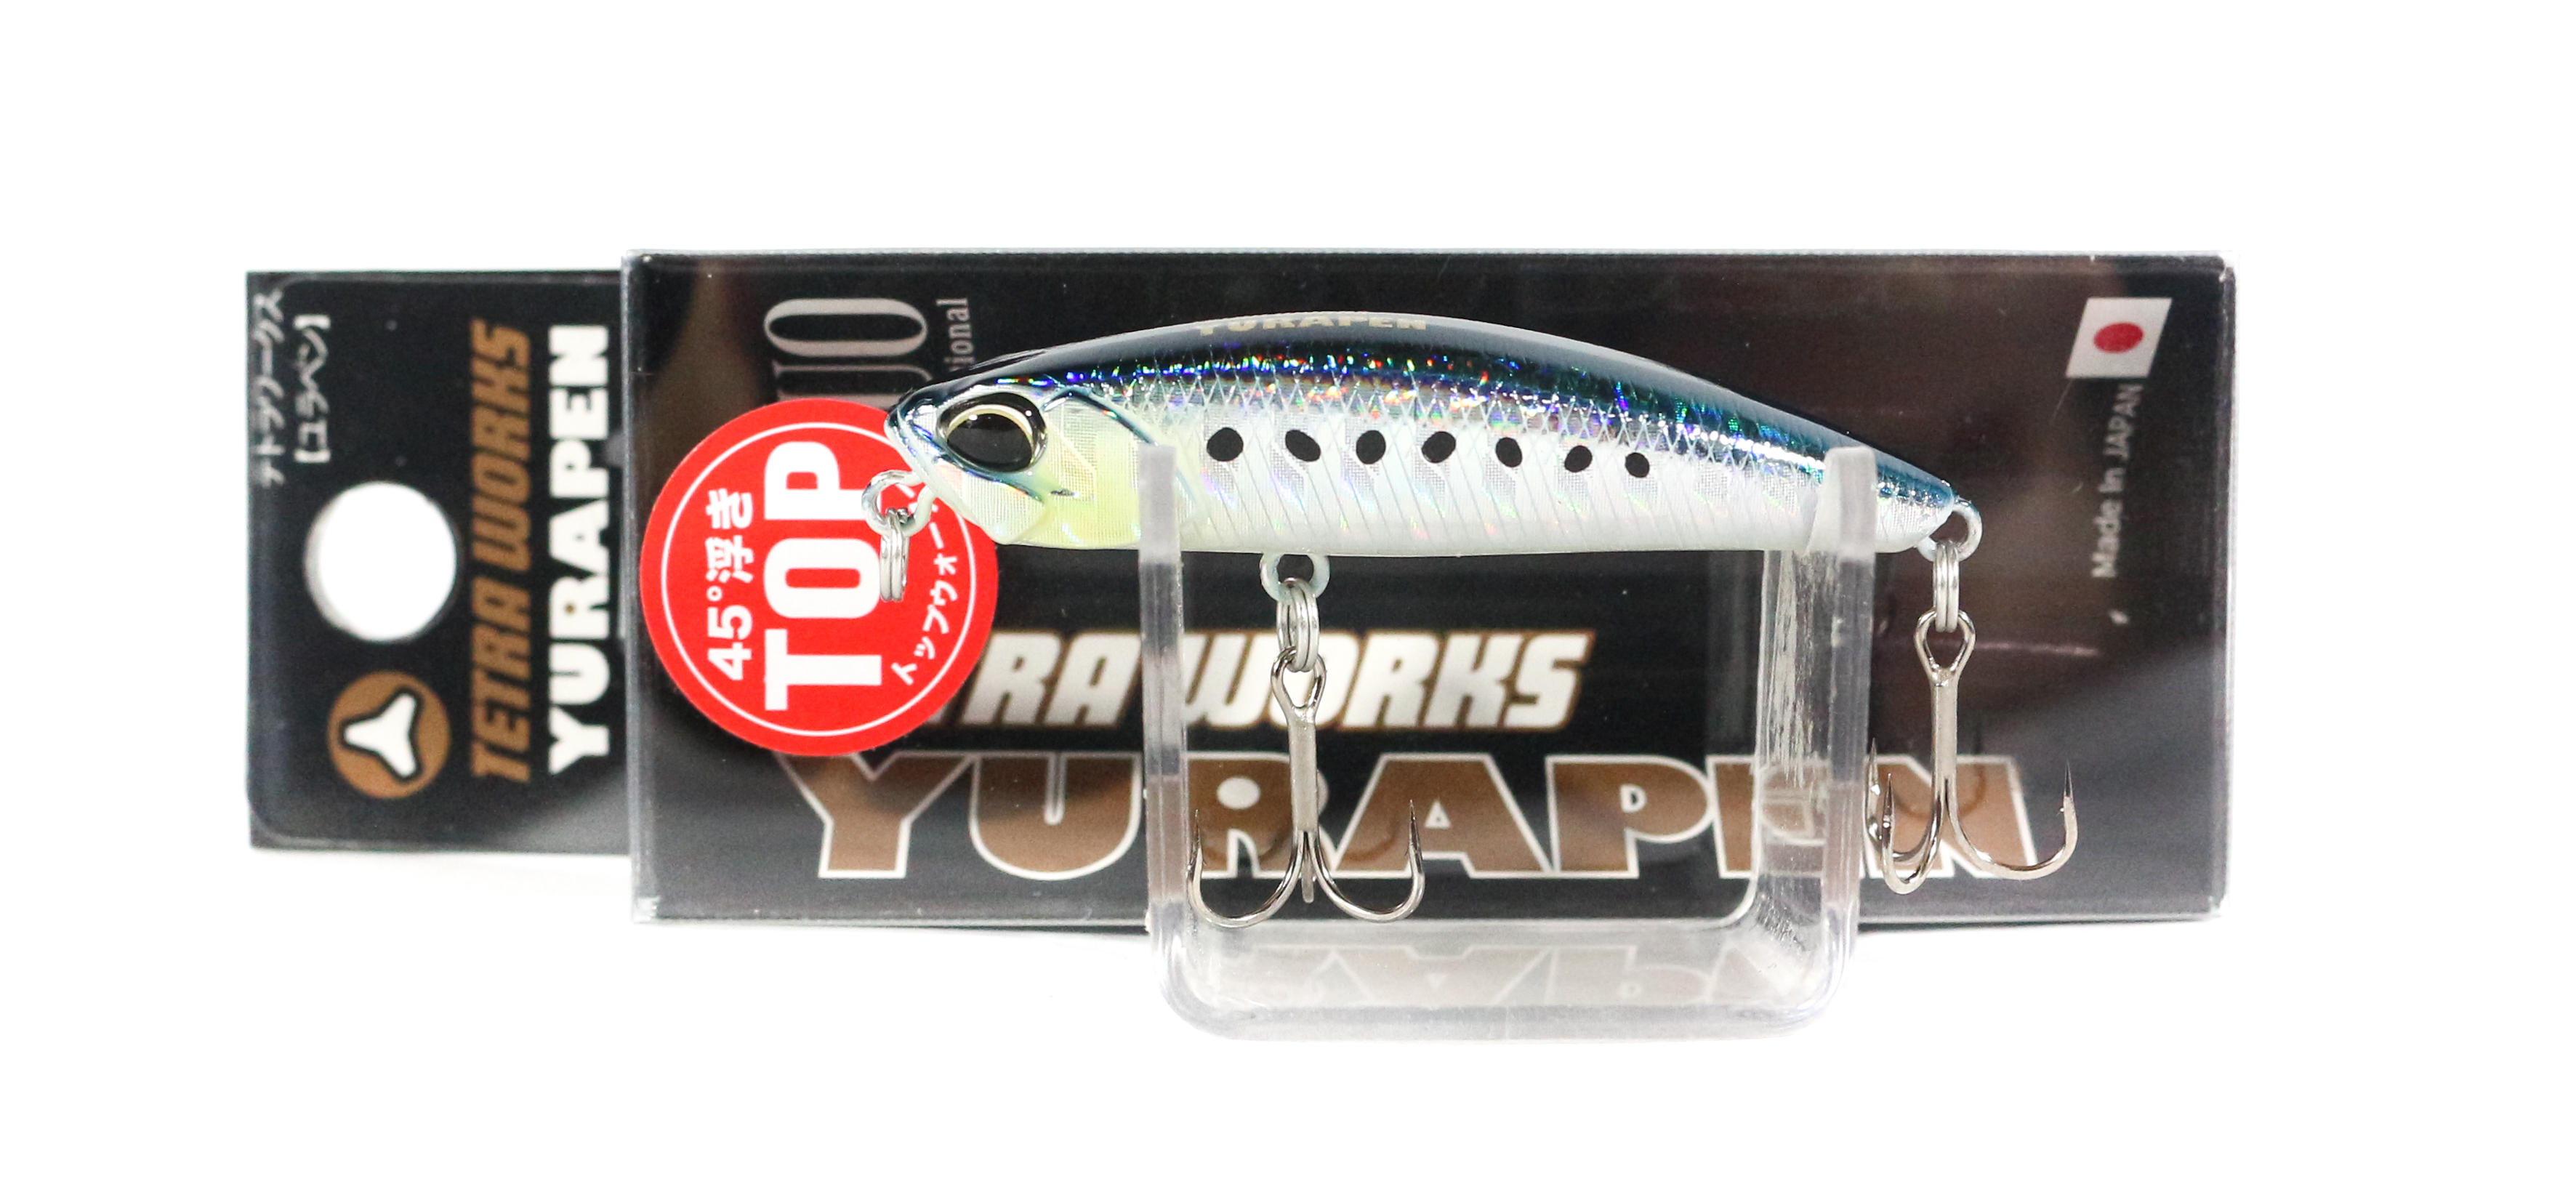 Duo Tetra Works Yurapen 48 mm Floating Lure AHA0011 (5017)